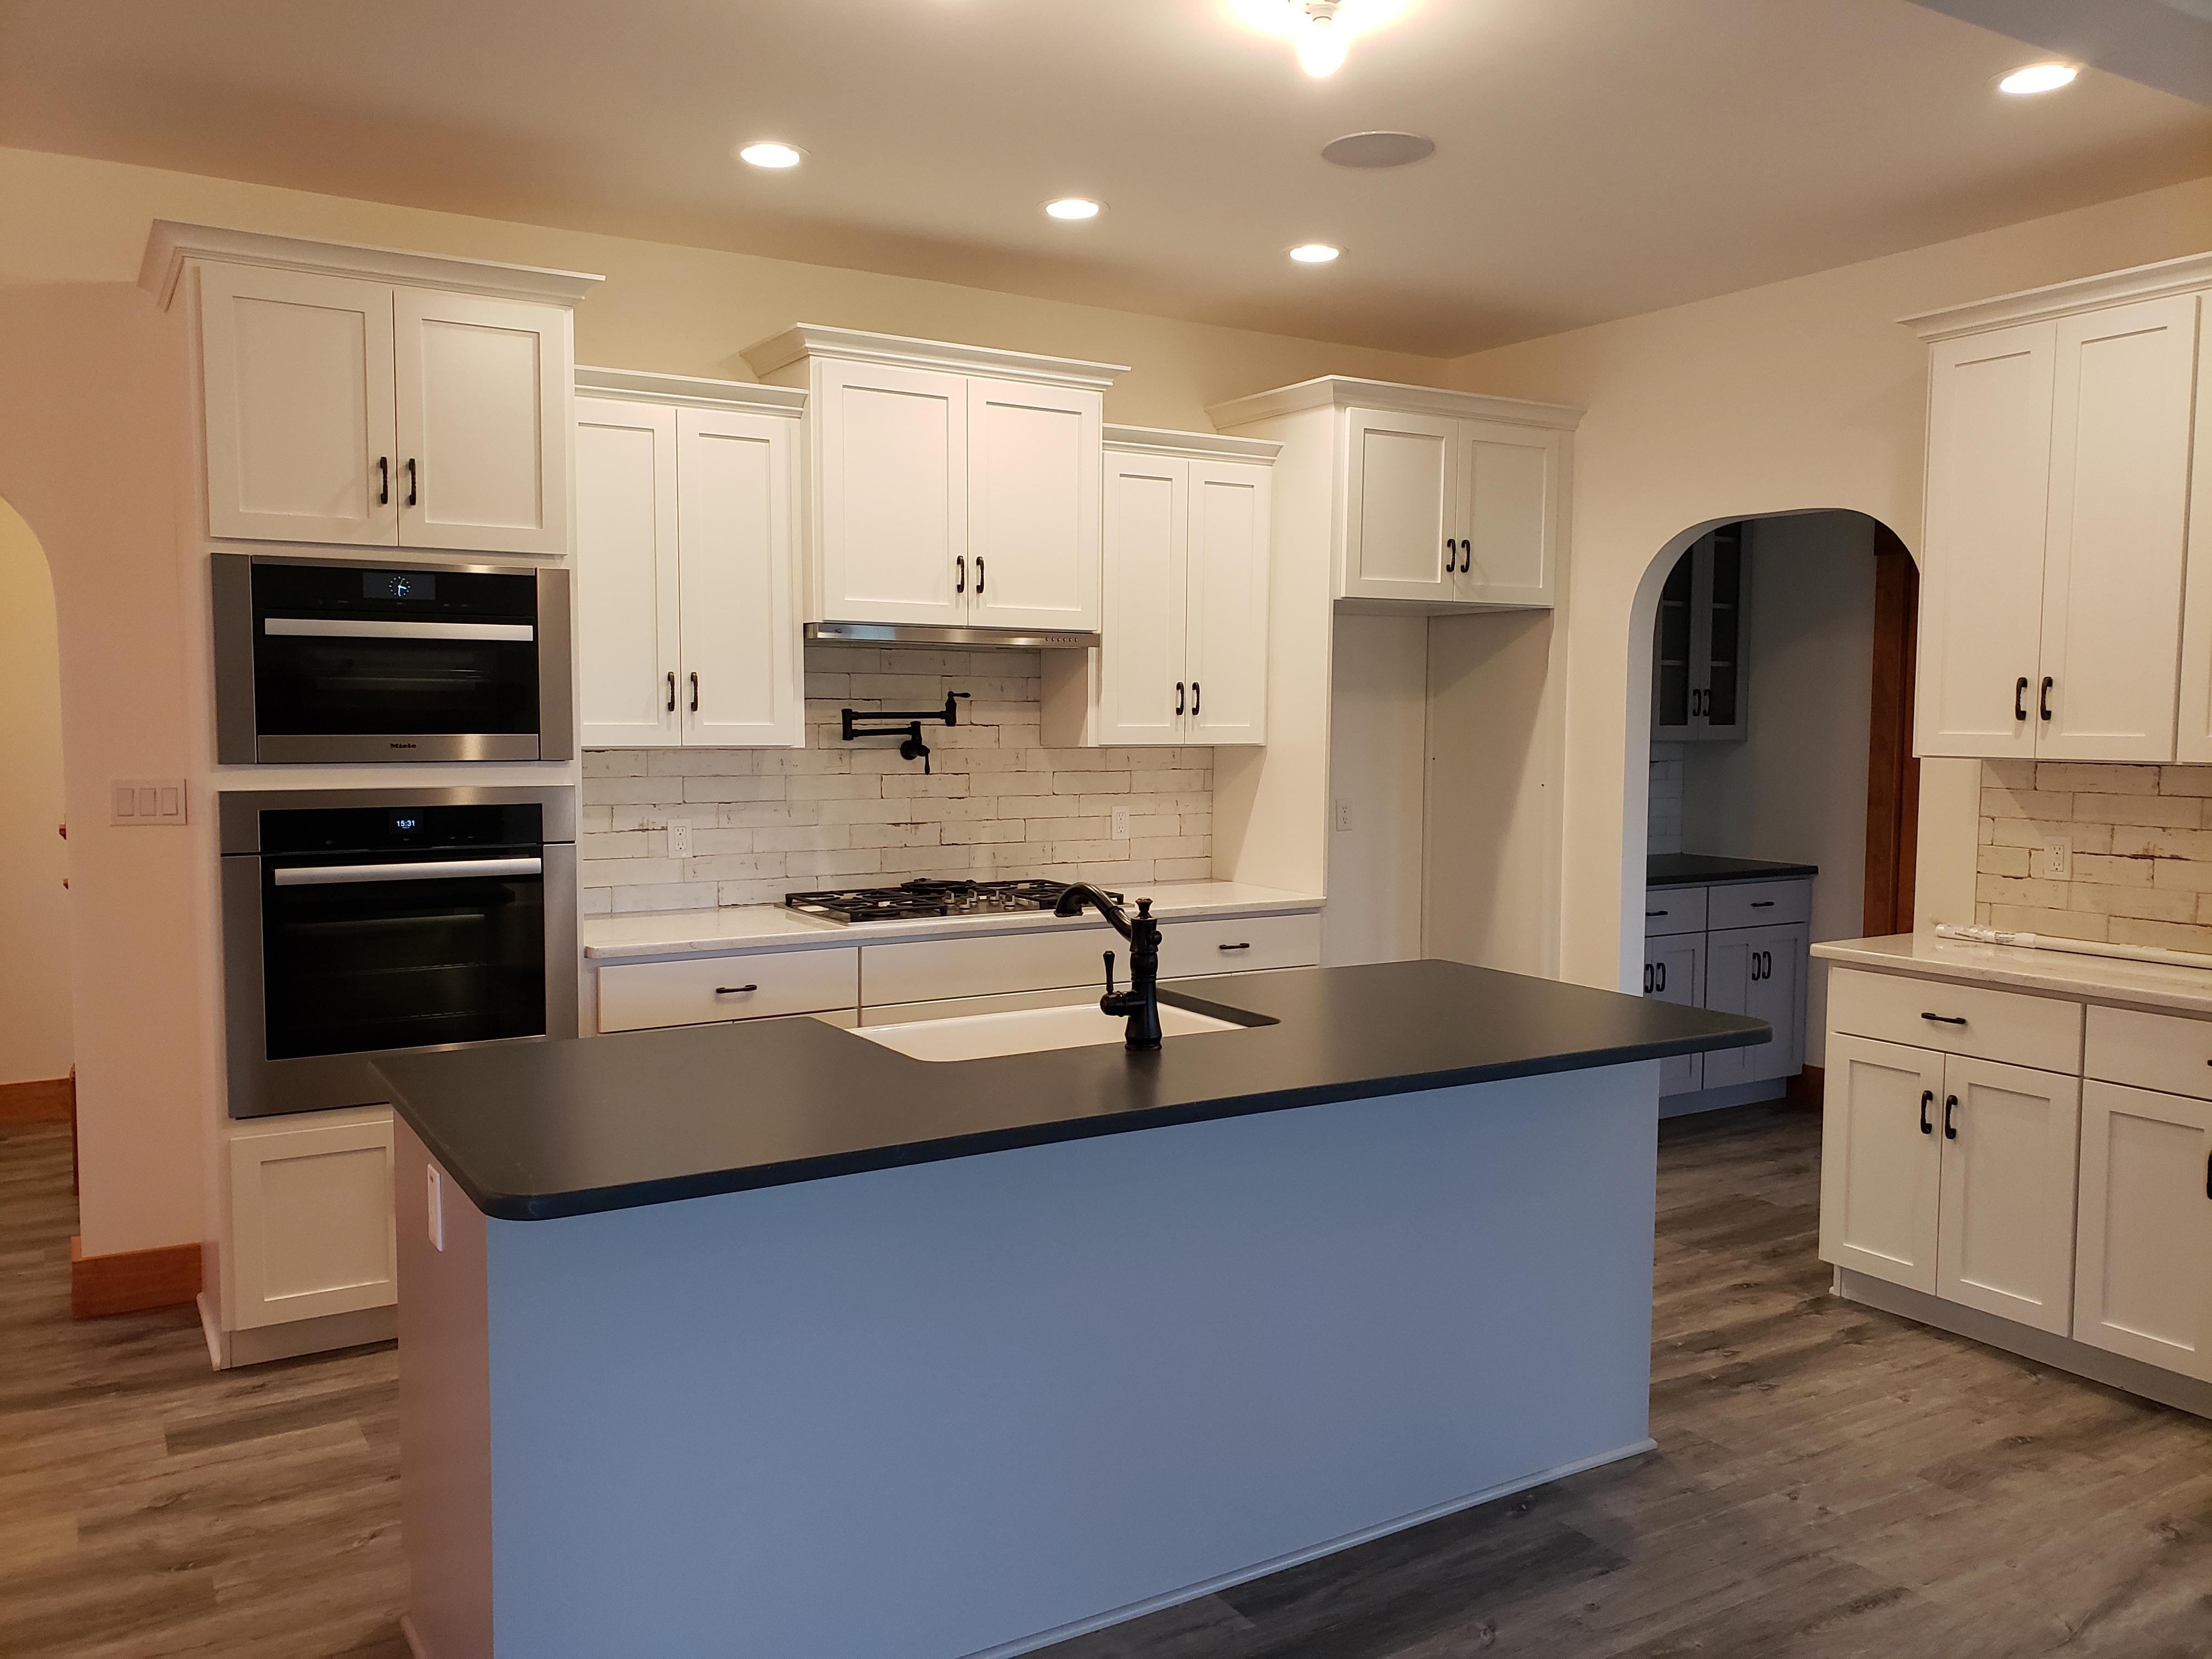 Kitchen featured in The Hickory By Timbercrest Builders in Poconos, PA